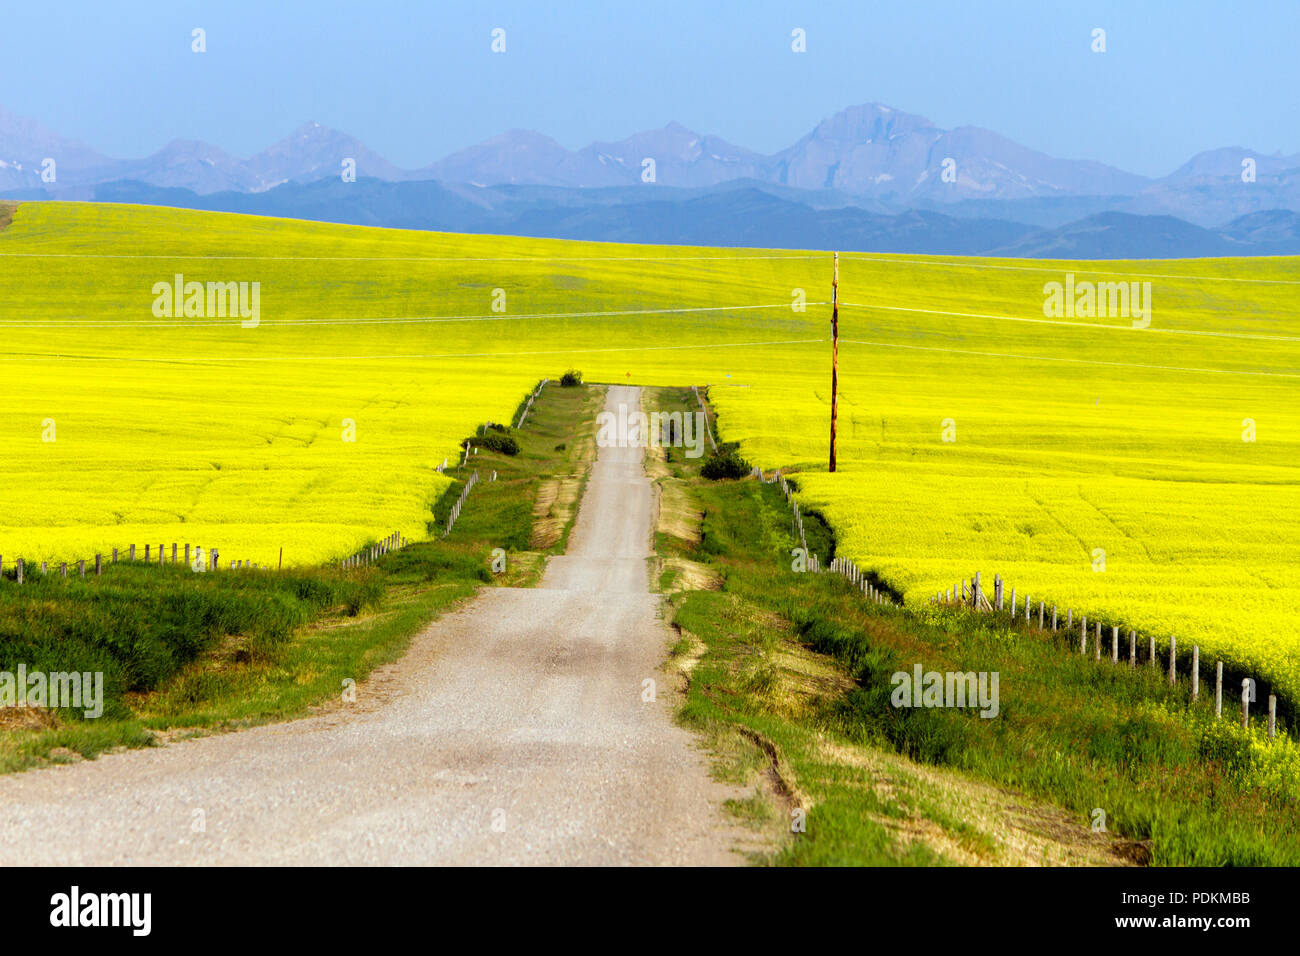 Surrounded By Canoloa Feilds Quotes: Canada Prairie Road Stock Photos & Canada Prairie Road